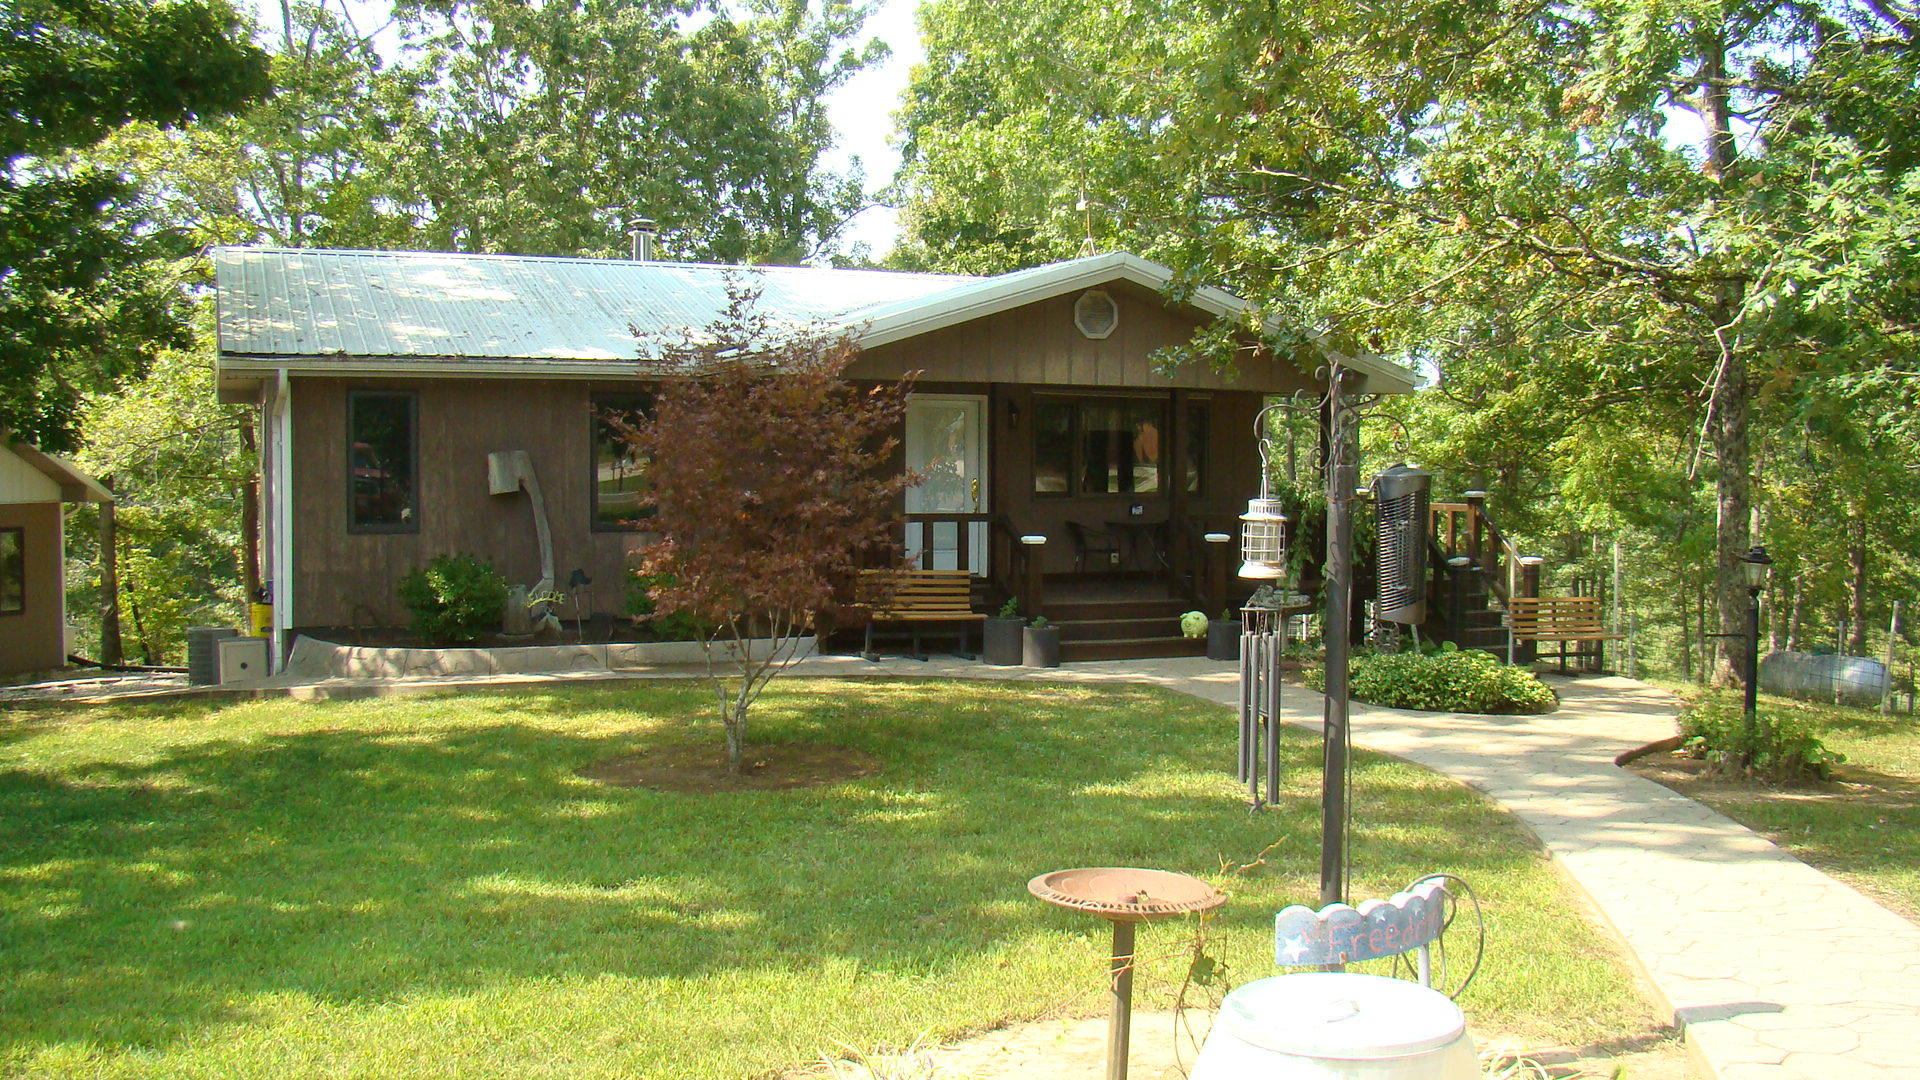 26445 State Highway 19 Eminence, MO 65466